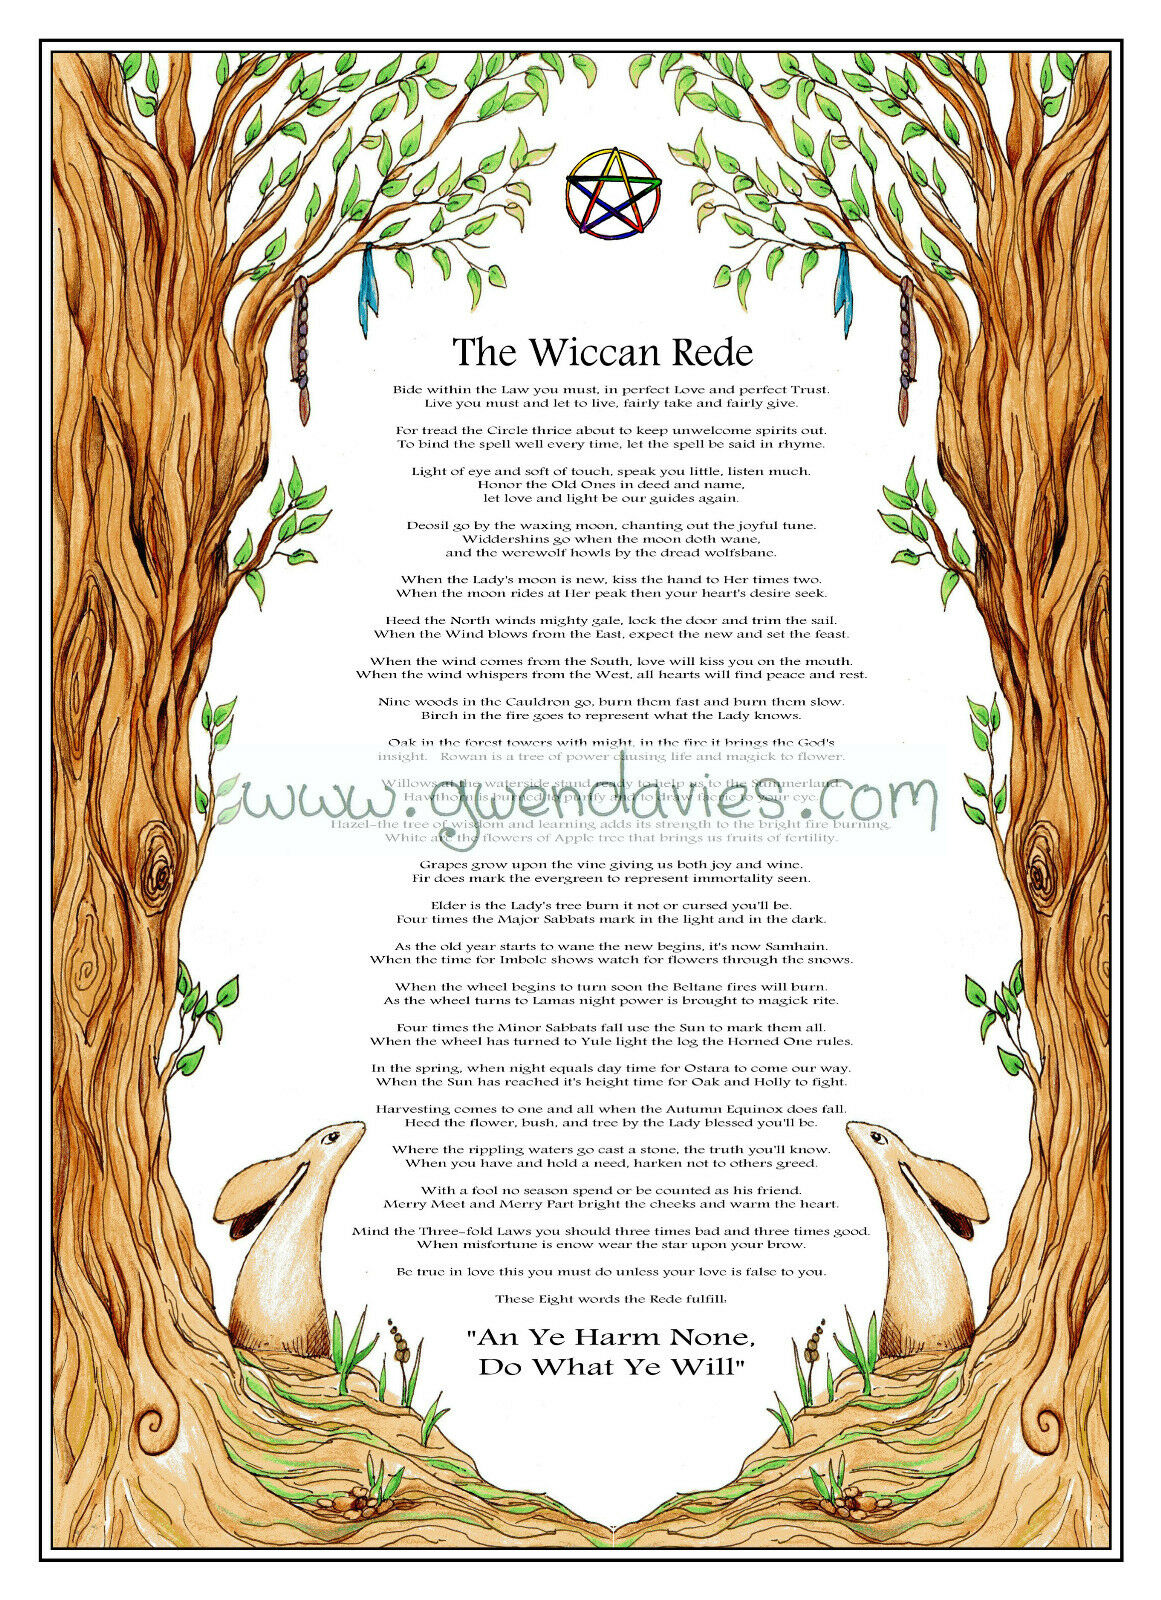 2018 Lunar Calendar Wiccan Rede And Wheel Of The Year Pagan Poster